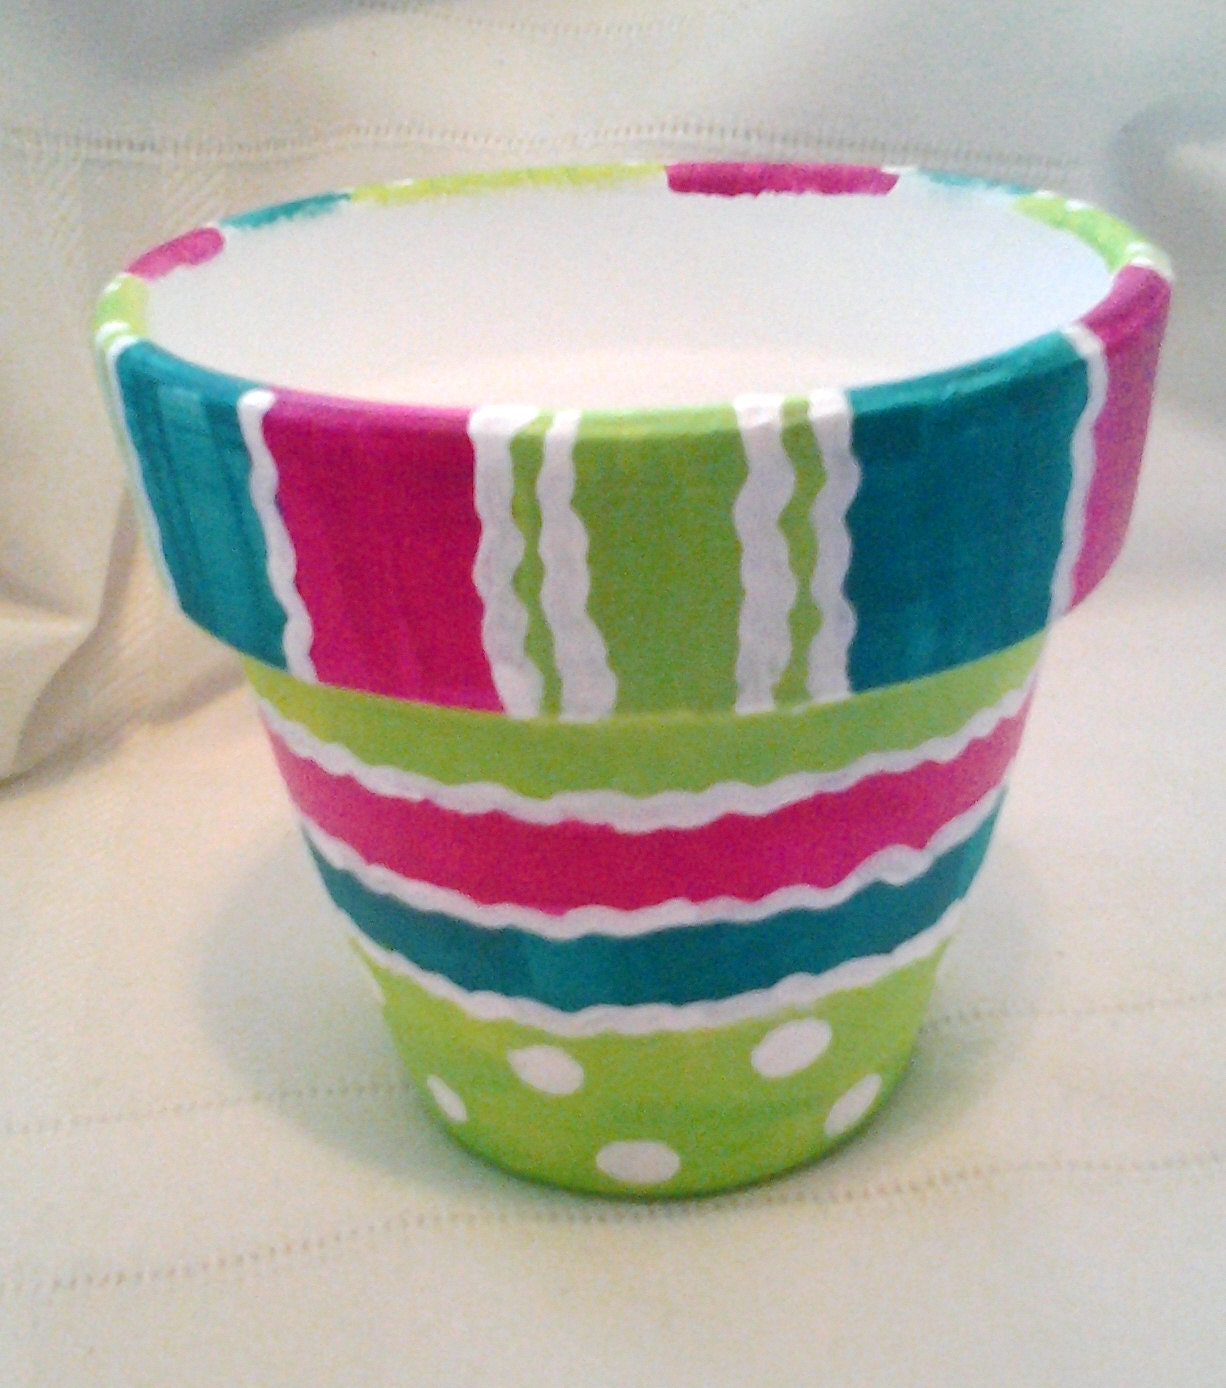 hand painted clay pot creative design pink green teal. Black Bedroom Furniture Sets. Home Design Ideas